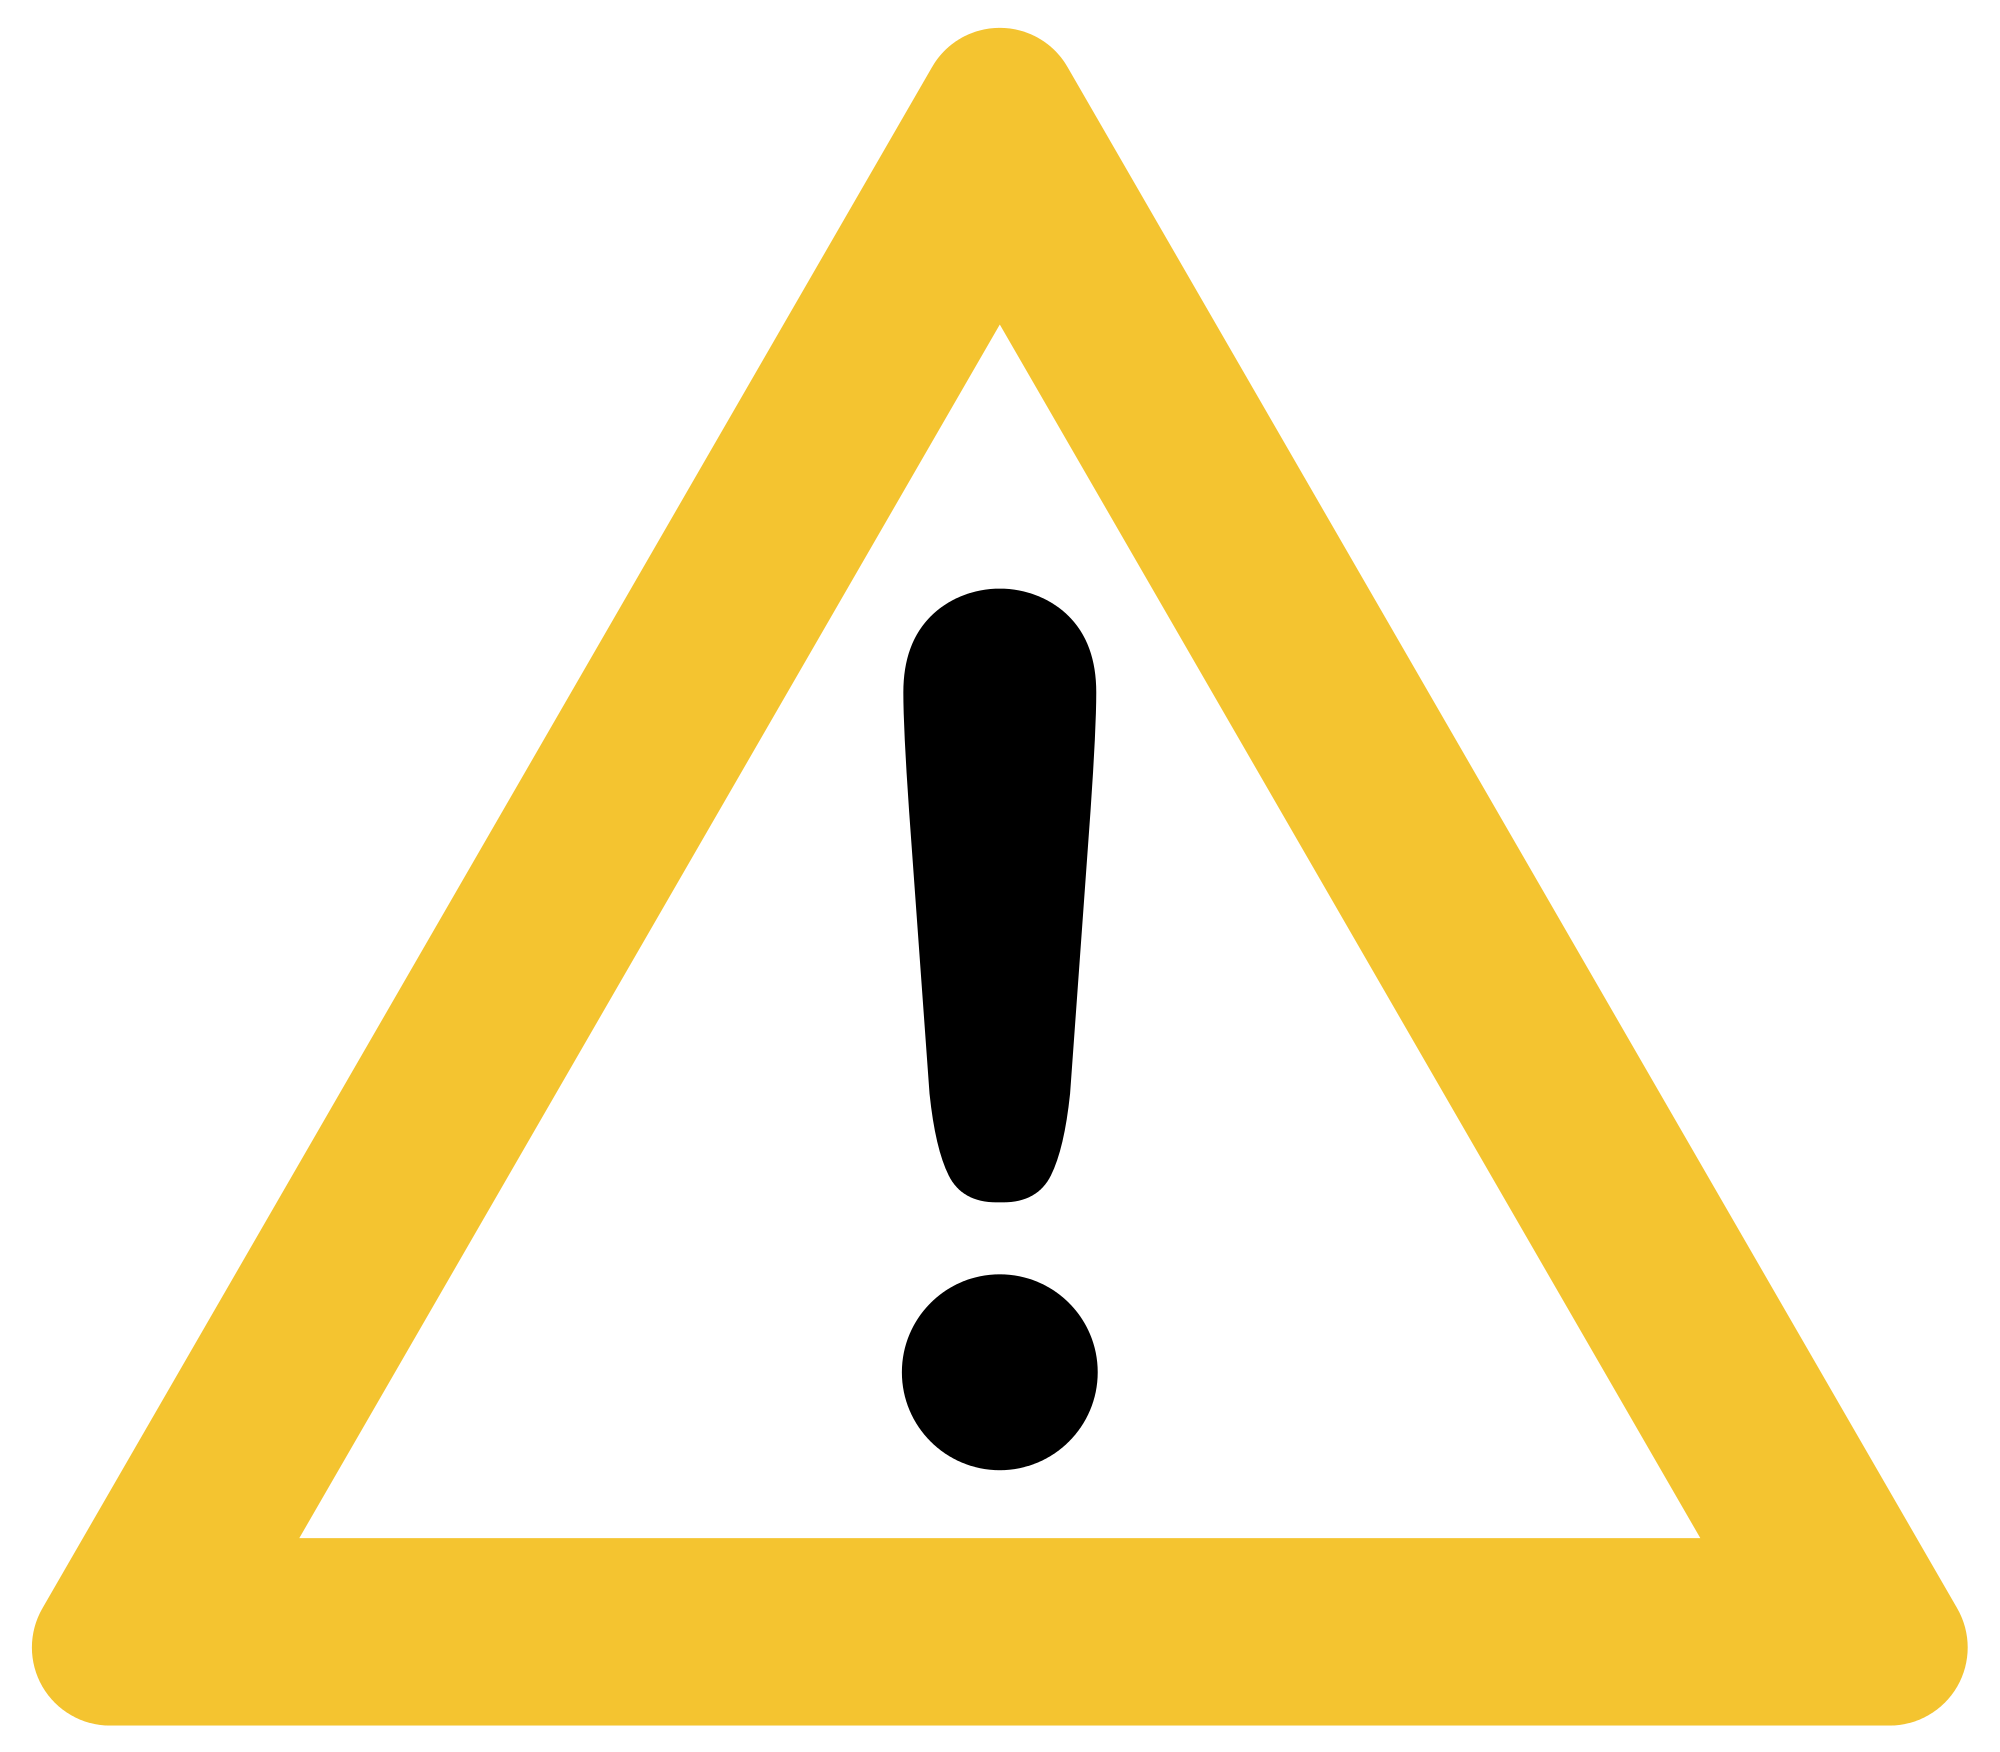 Caution clipart warning triangle. File achtung yellow svg